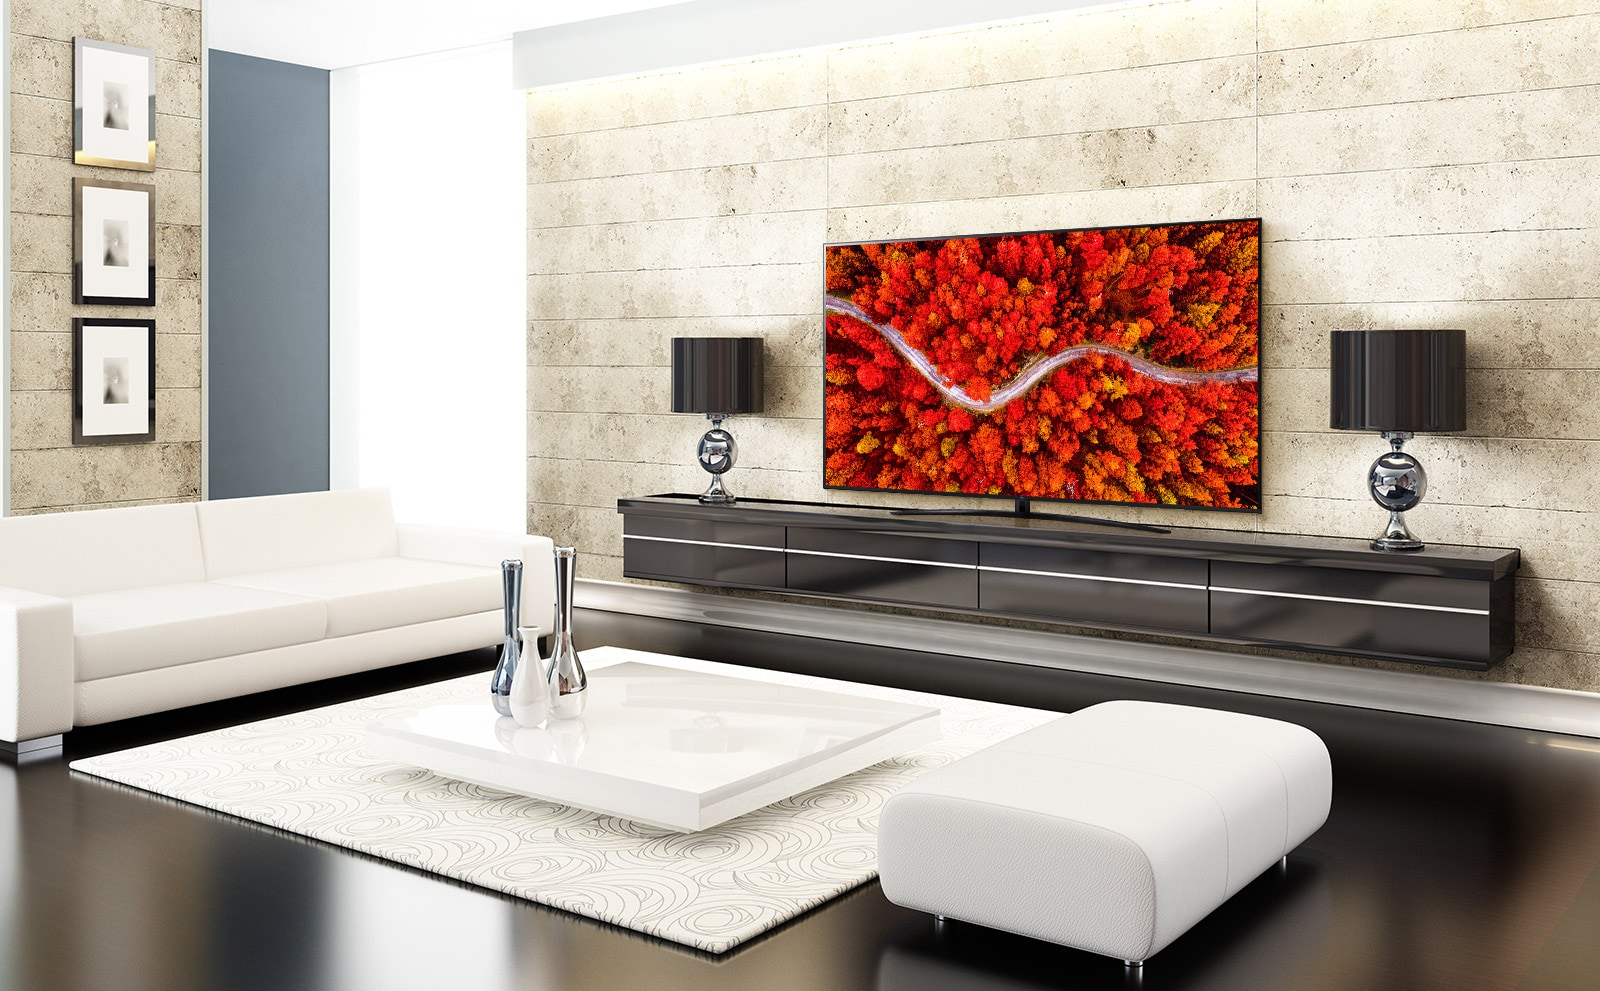 A luxurious living room with a television showing an aerial view of red woods.